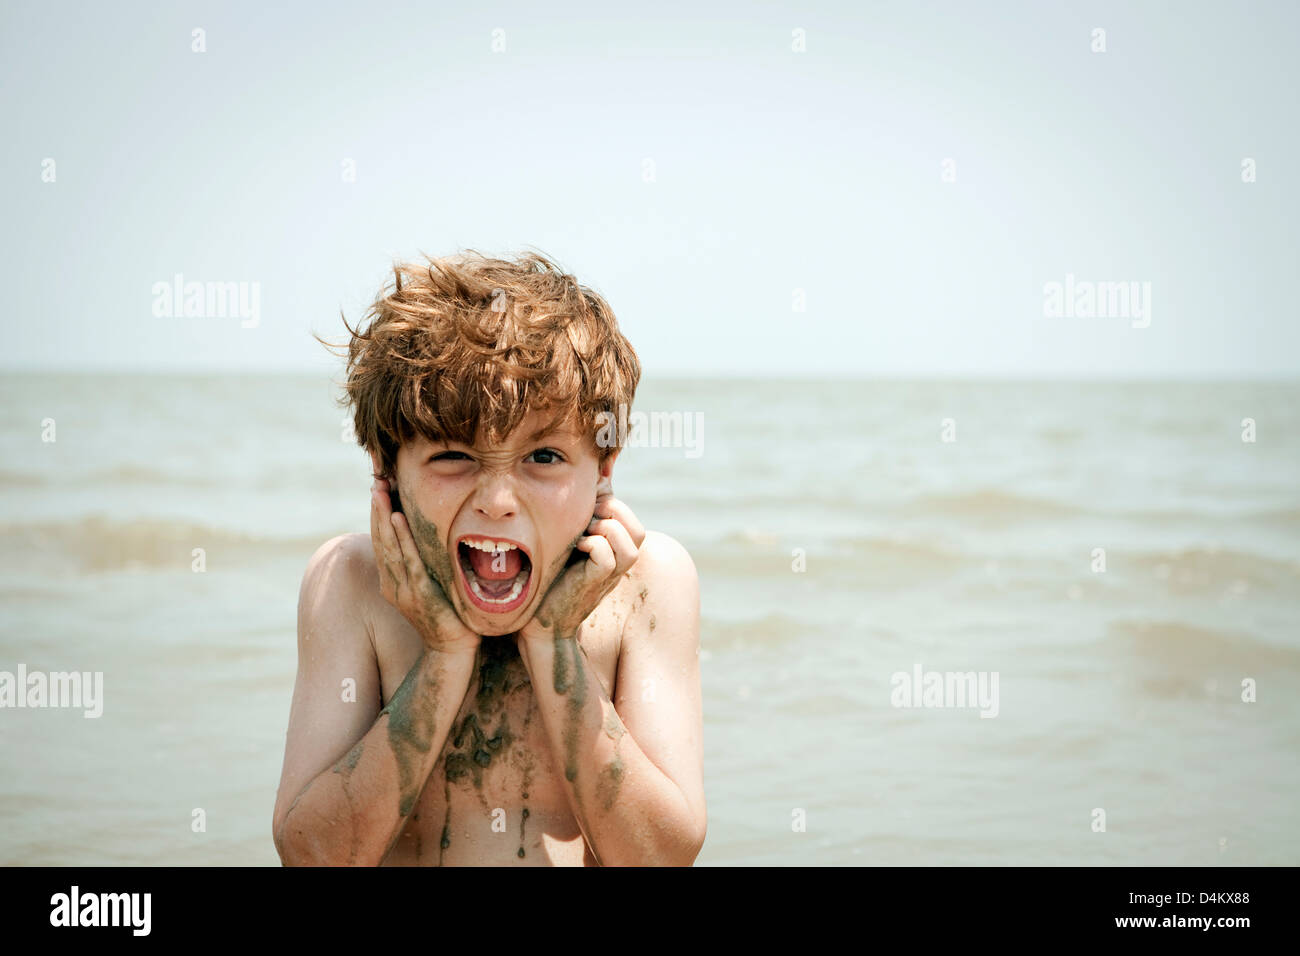 Boy playing with wet sand on beach - Stock Image